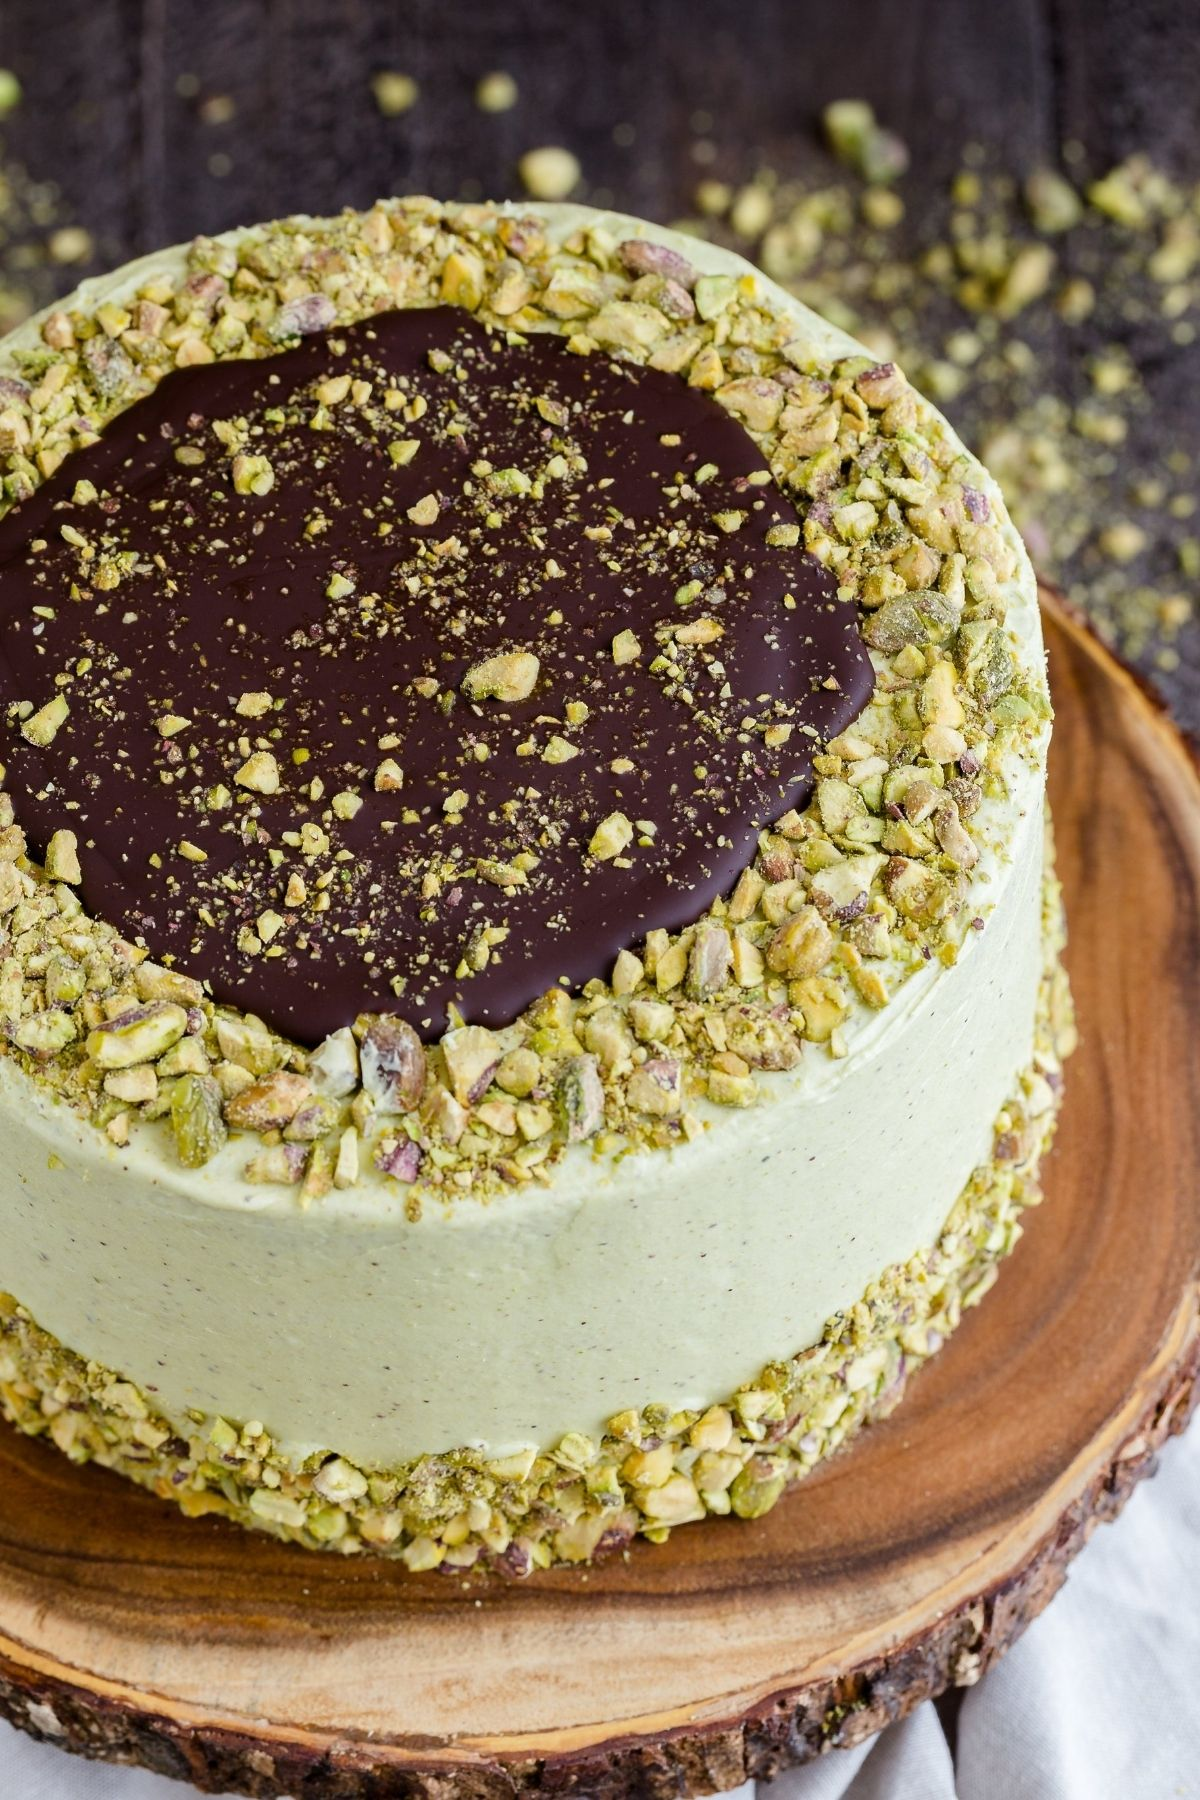 This layered Chocolate Pistachio Cake will turn heads! Rich decadent chocolate cake slathered in light, creamy pistachio frosting. It looks just as good as it tastes.